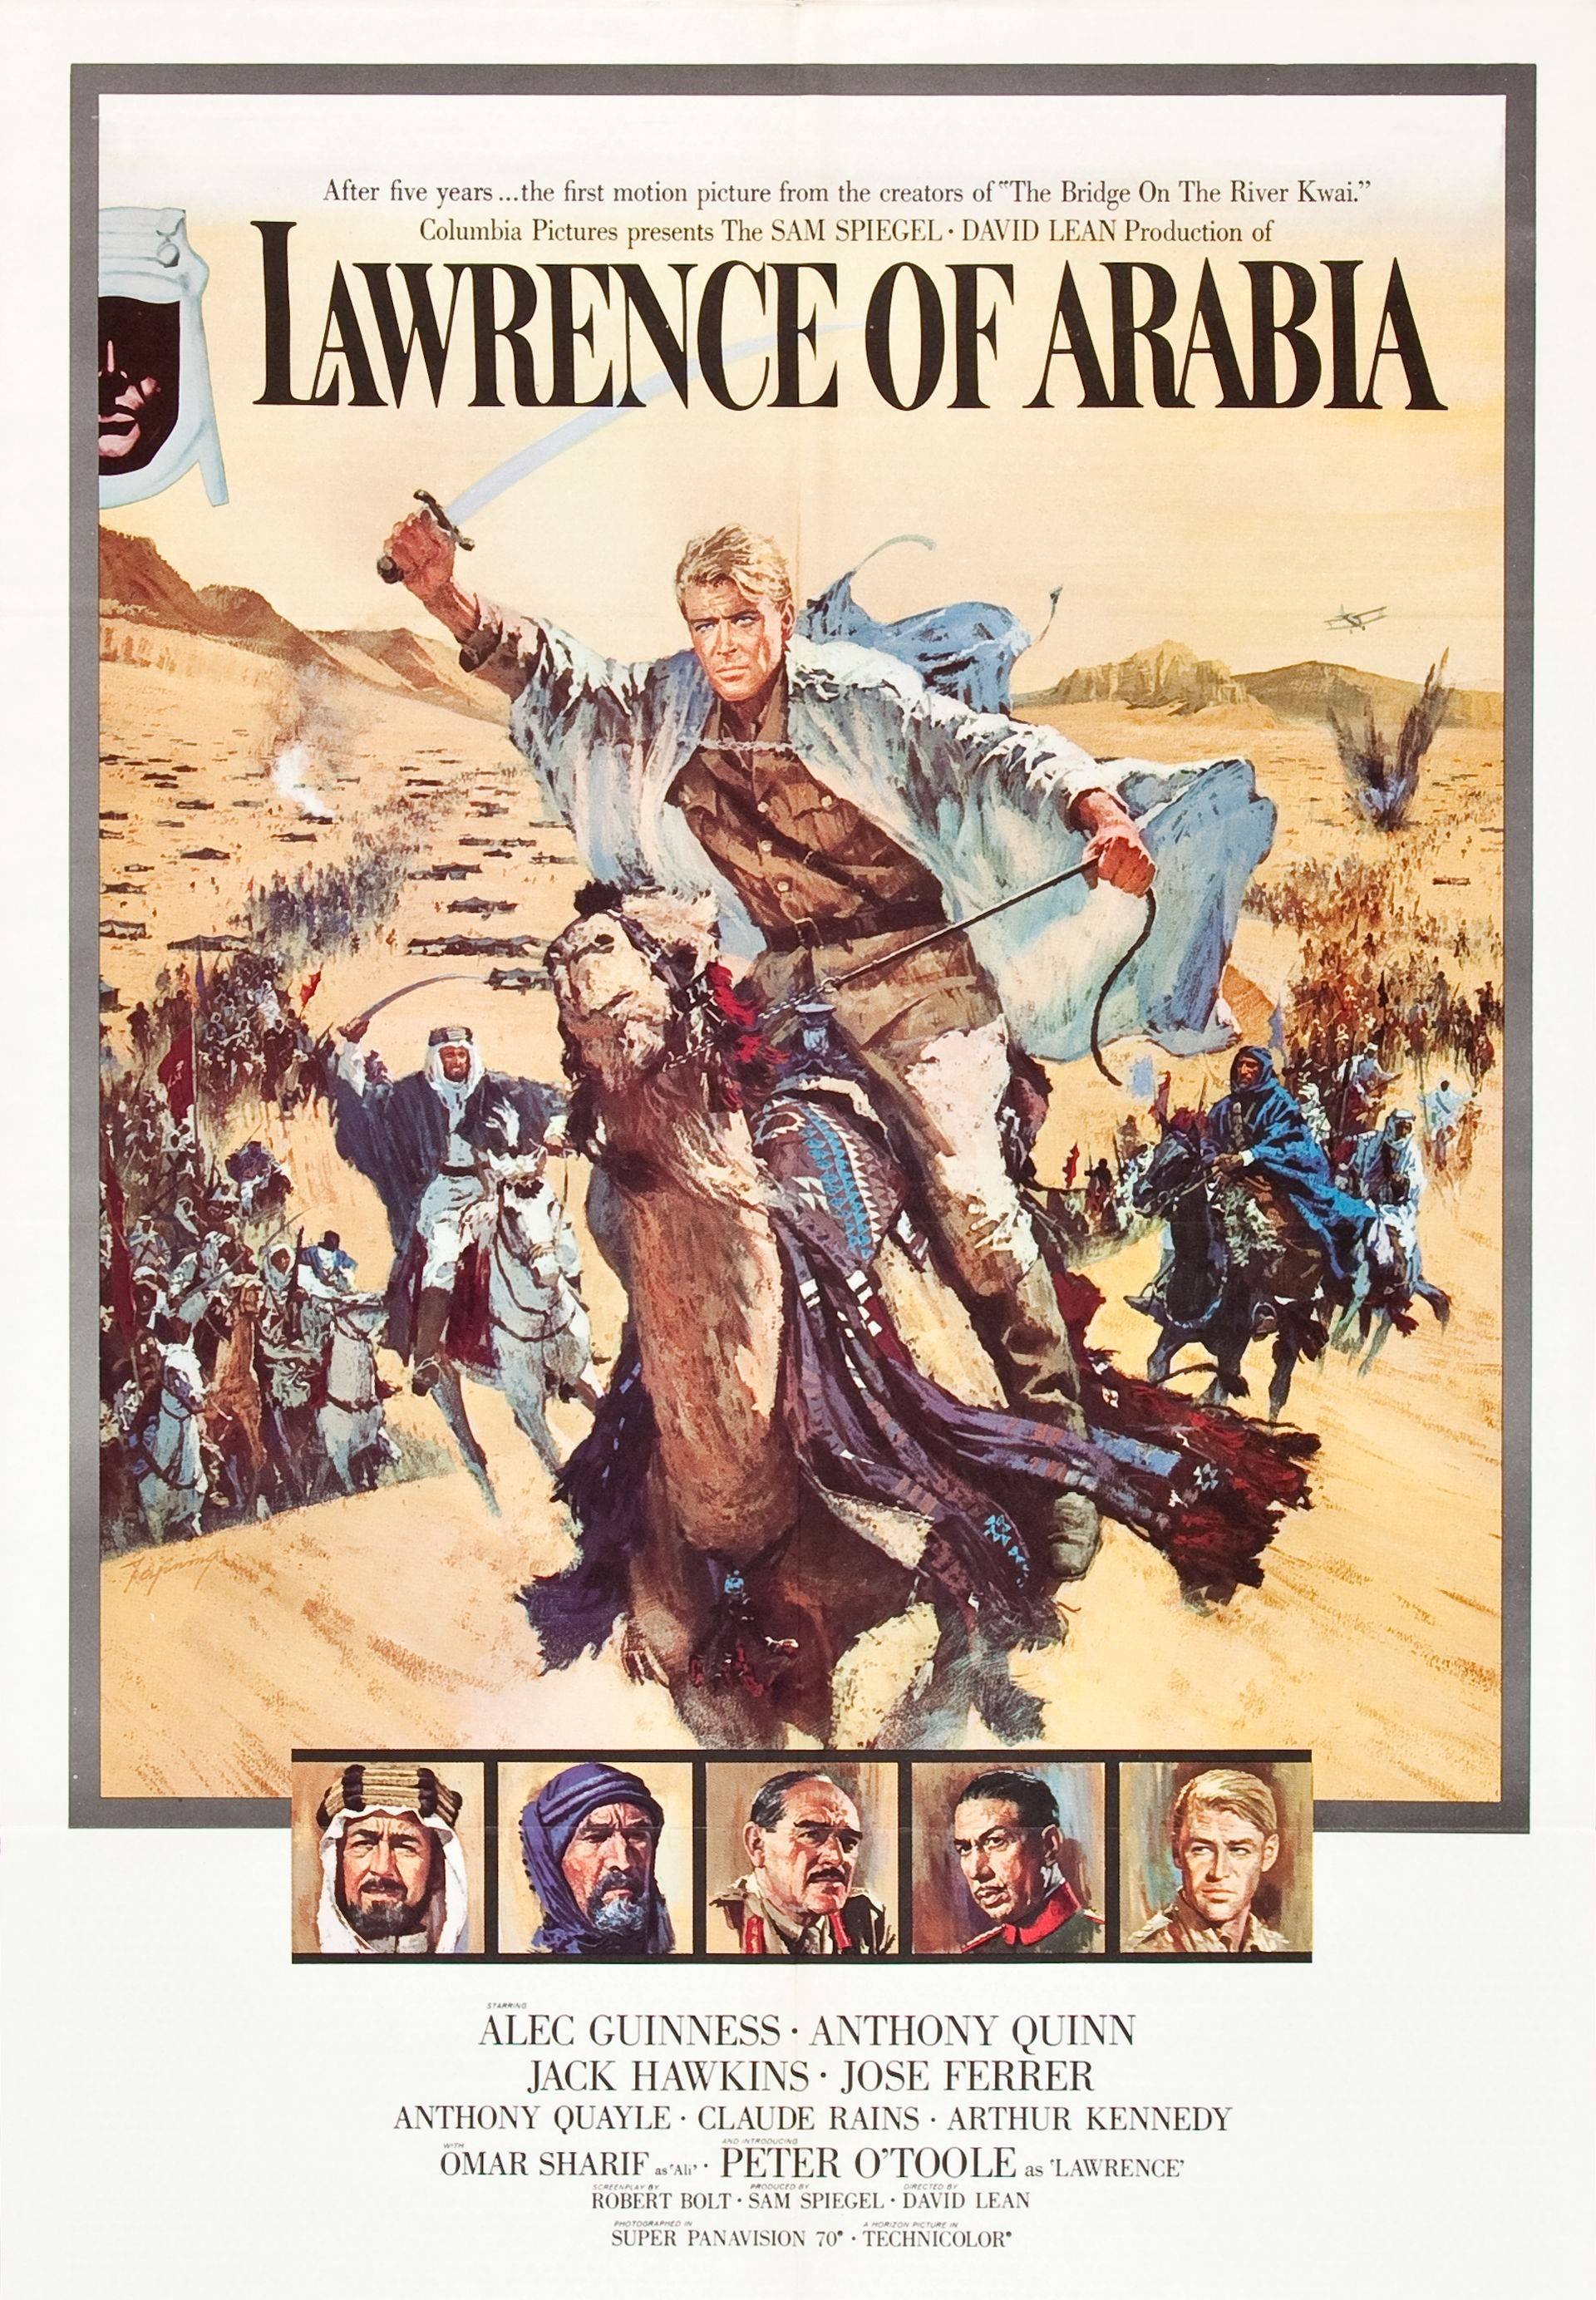 ARABIJOS LORENSAS (1962) / LAWRENCE OF ARABIA